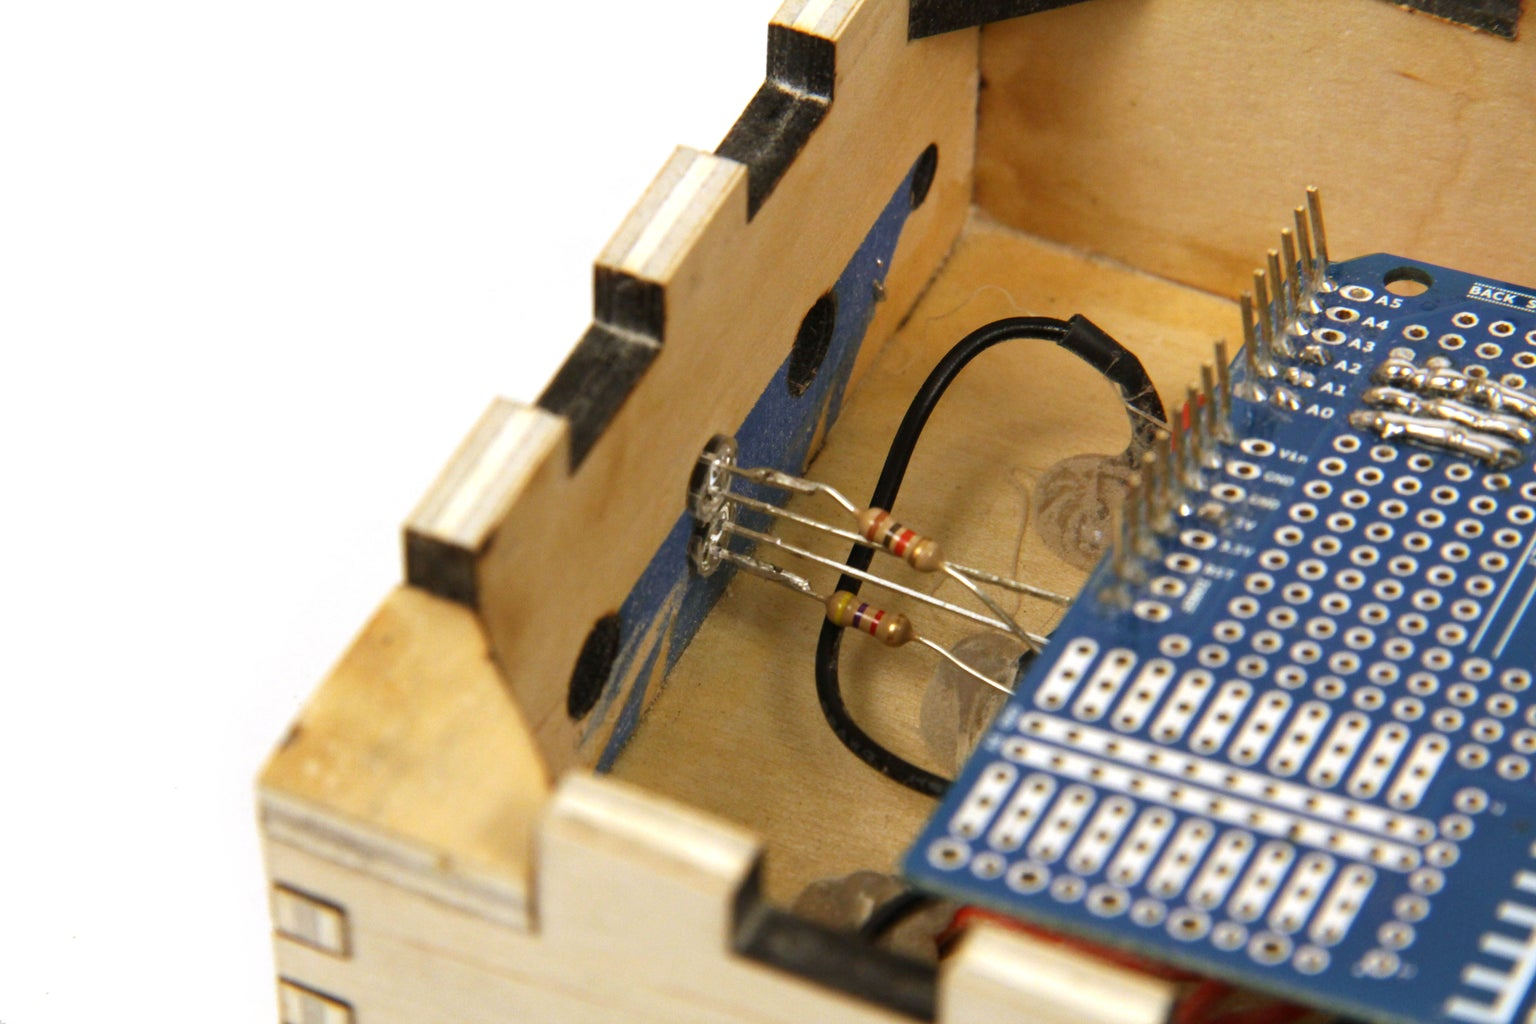 Mount and Wire LEDs